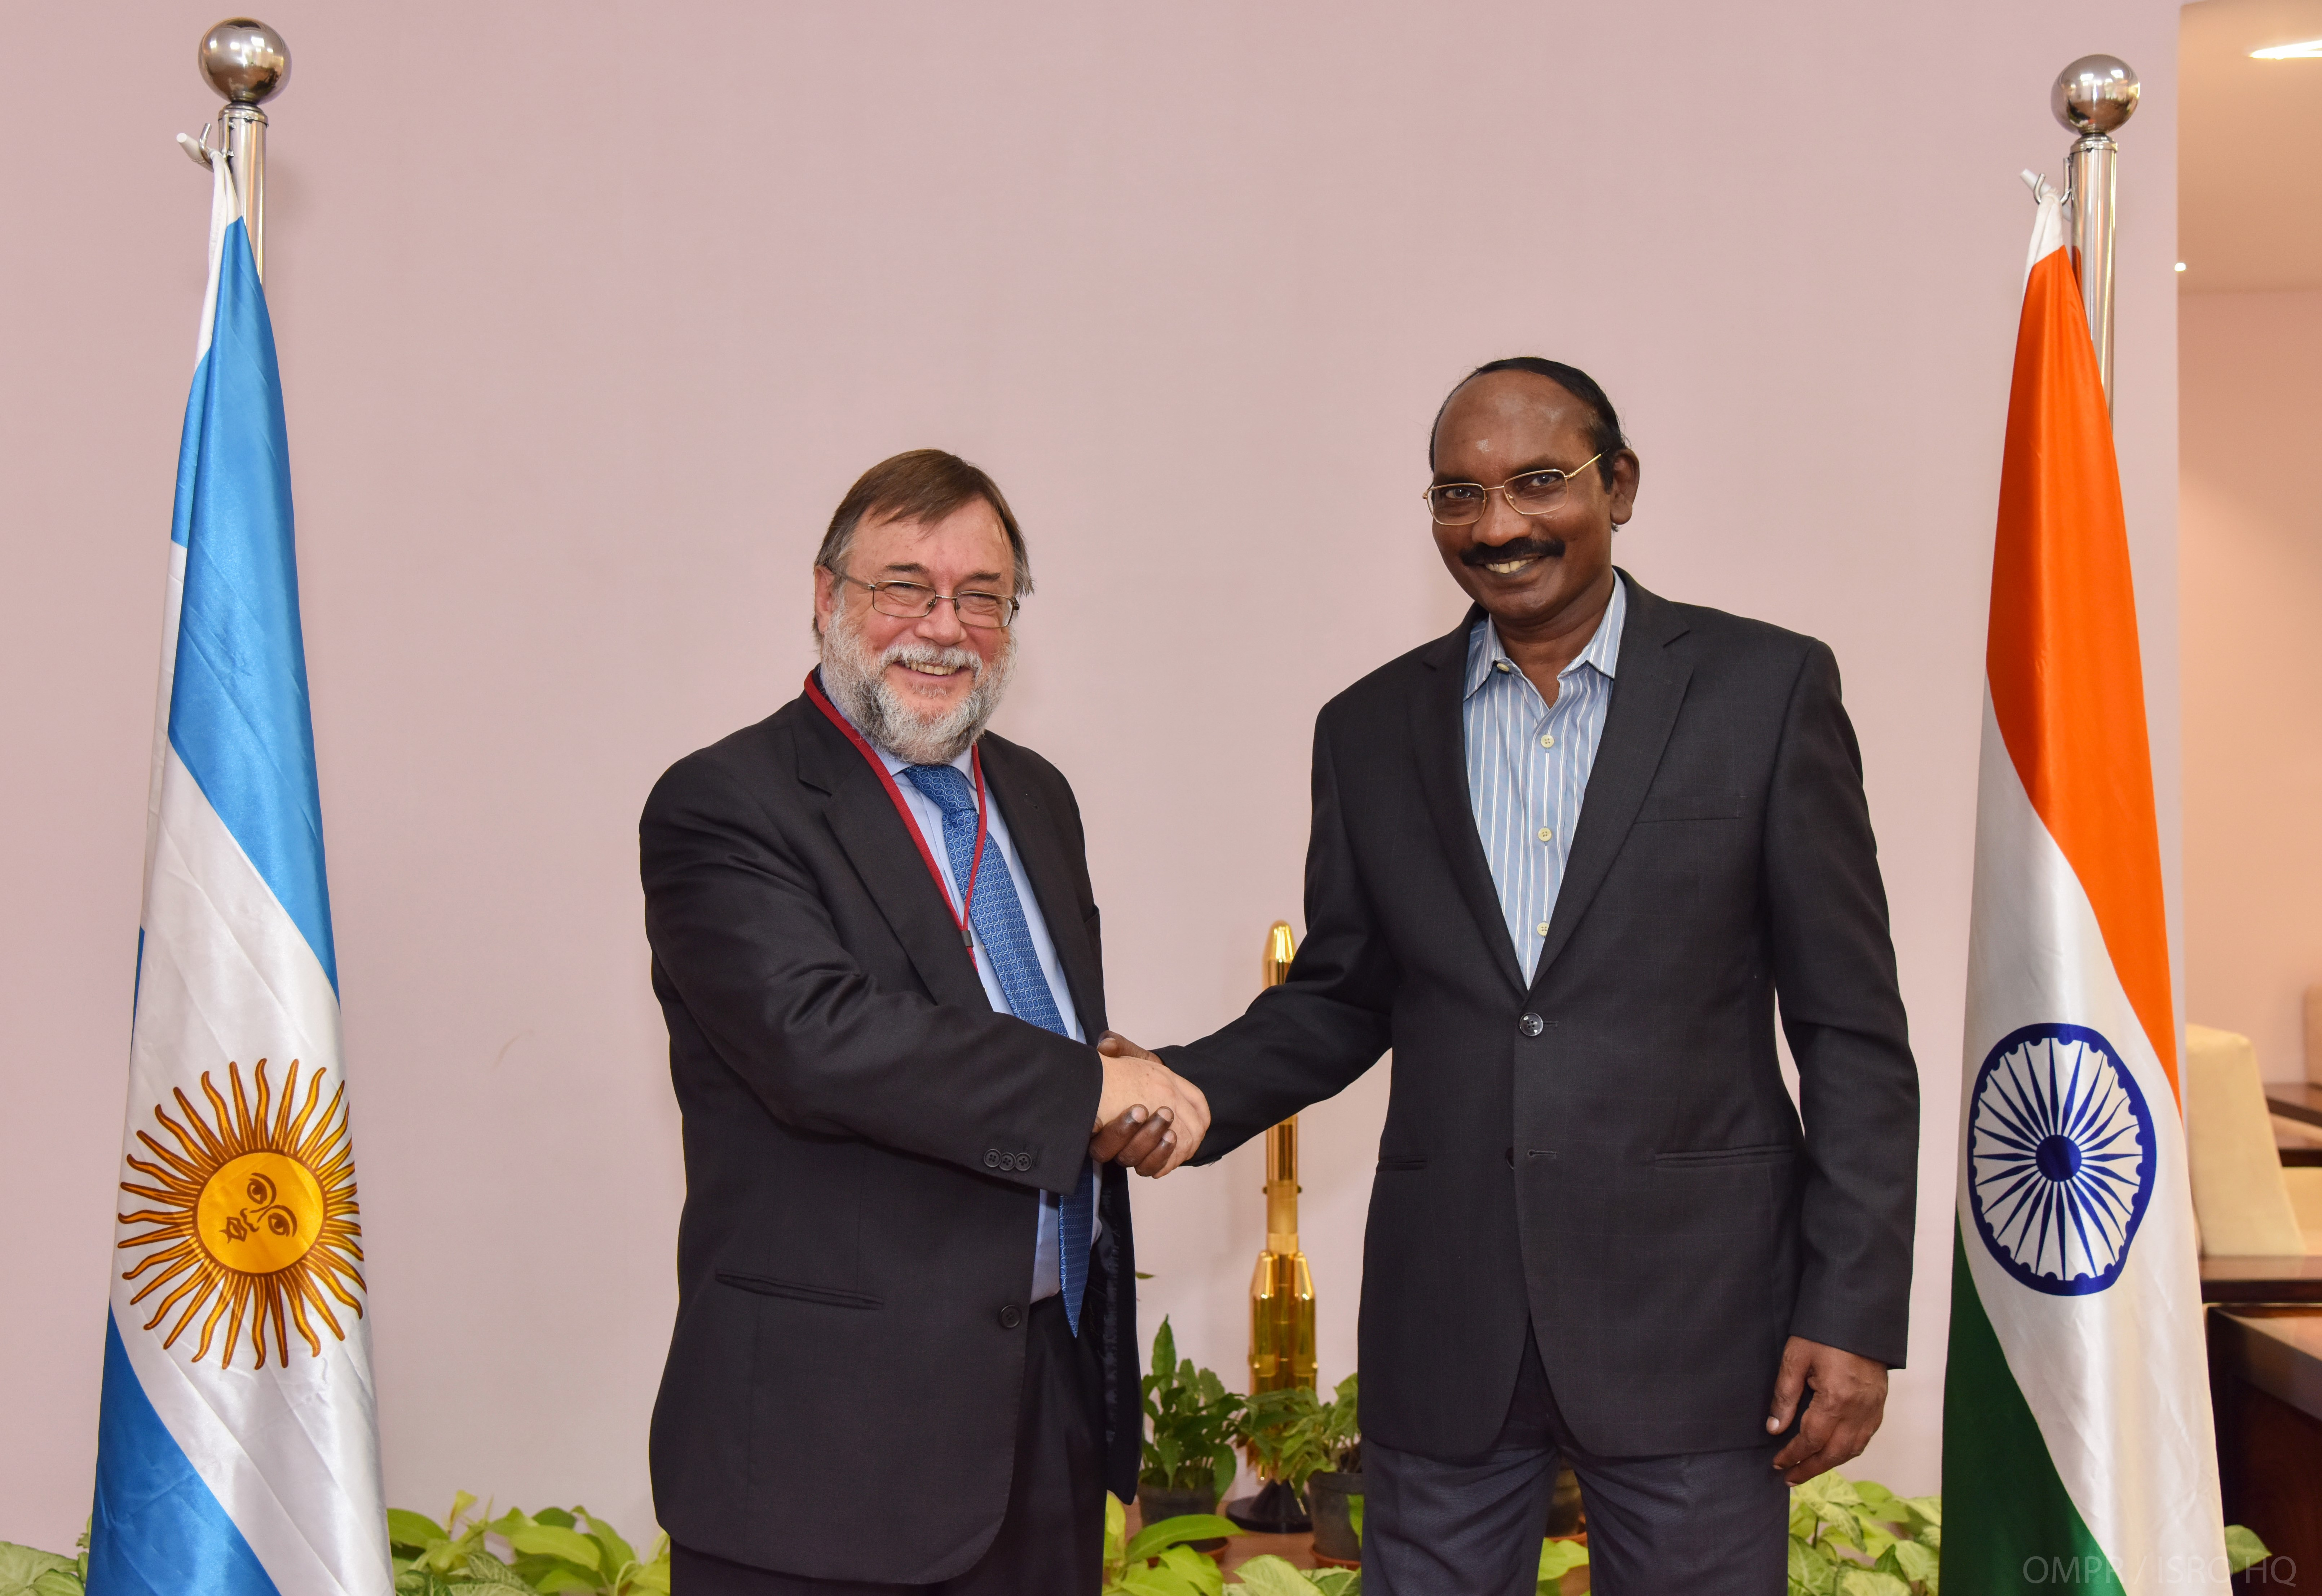 Ambassador of the Argentine Republic met Dr. K. Sivan Chairman, ISRO/ Secretary, DOS